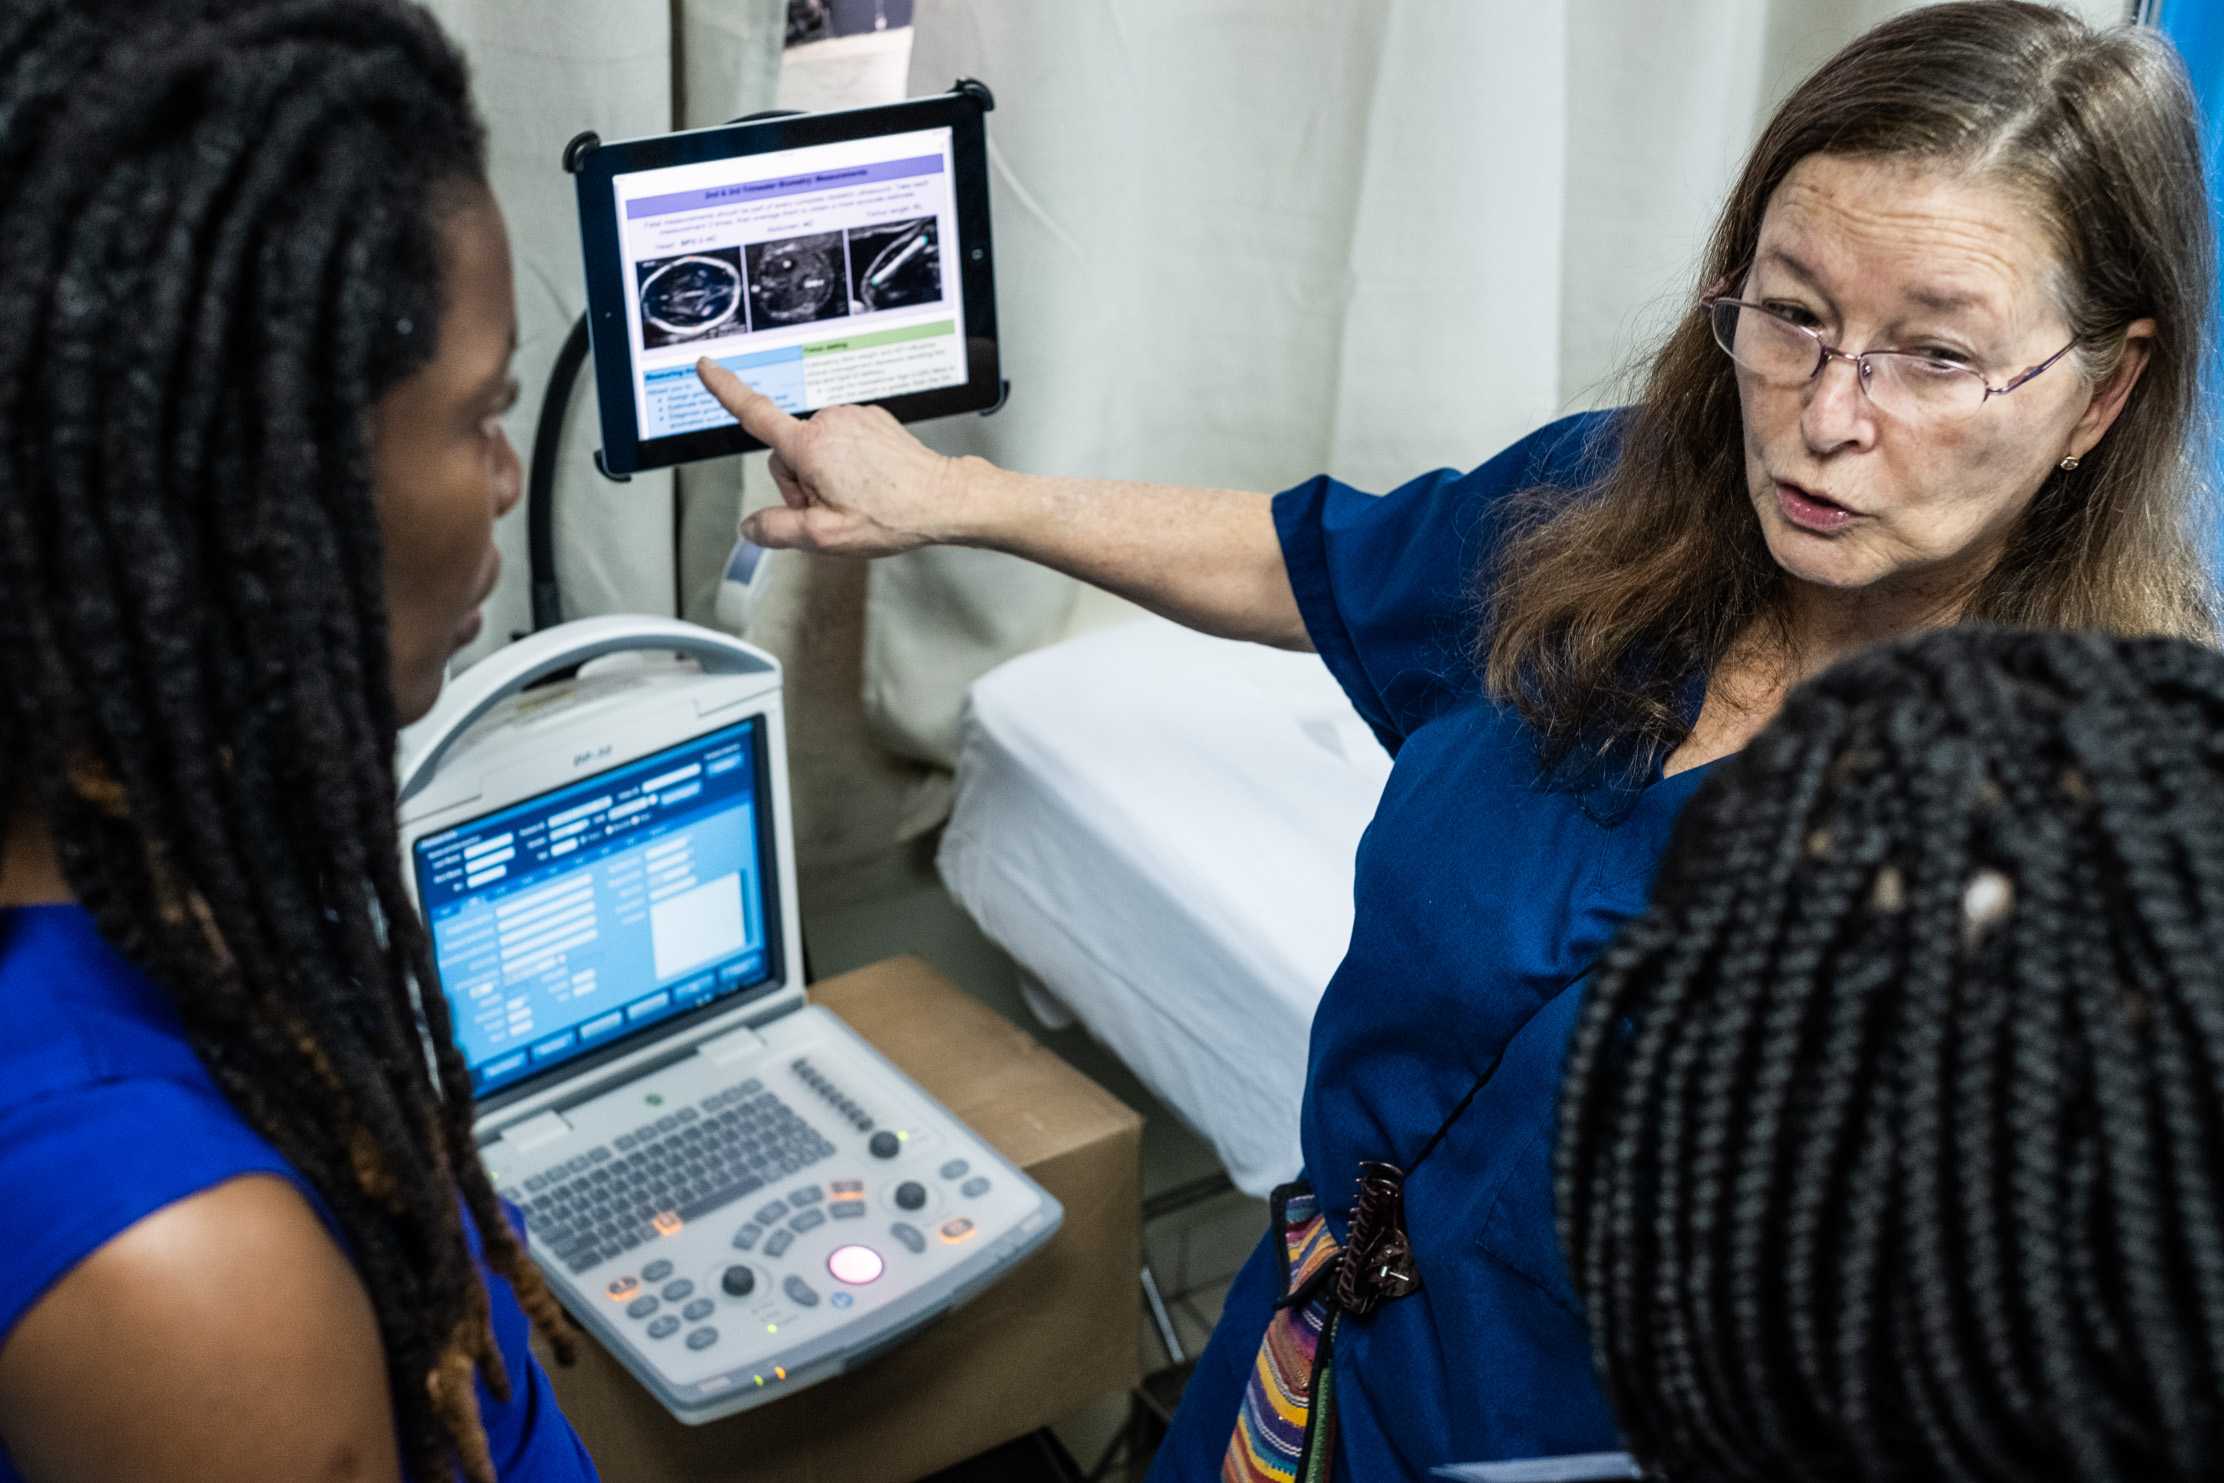 During the hands-on NYAGI training week, International OB/GYN and expert sonographer, Alicia Martin-Hirsel, shows how to best use the NAV™ software alongside the ultrasound machine.